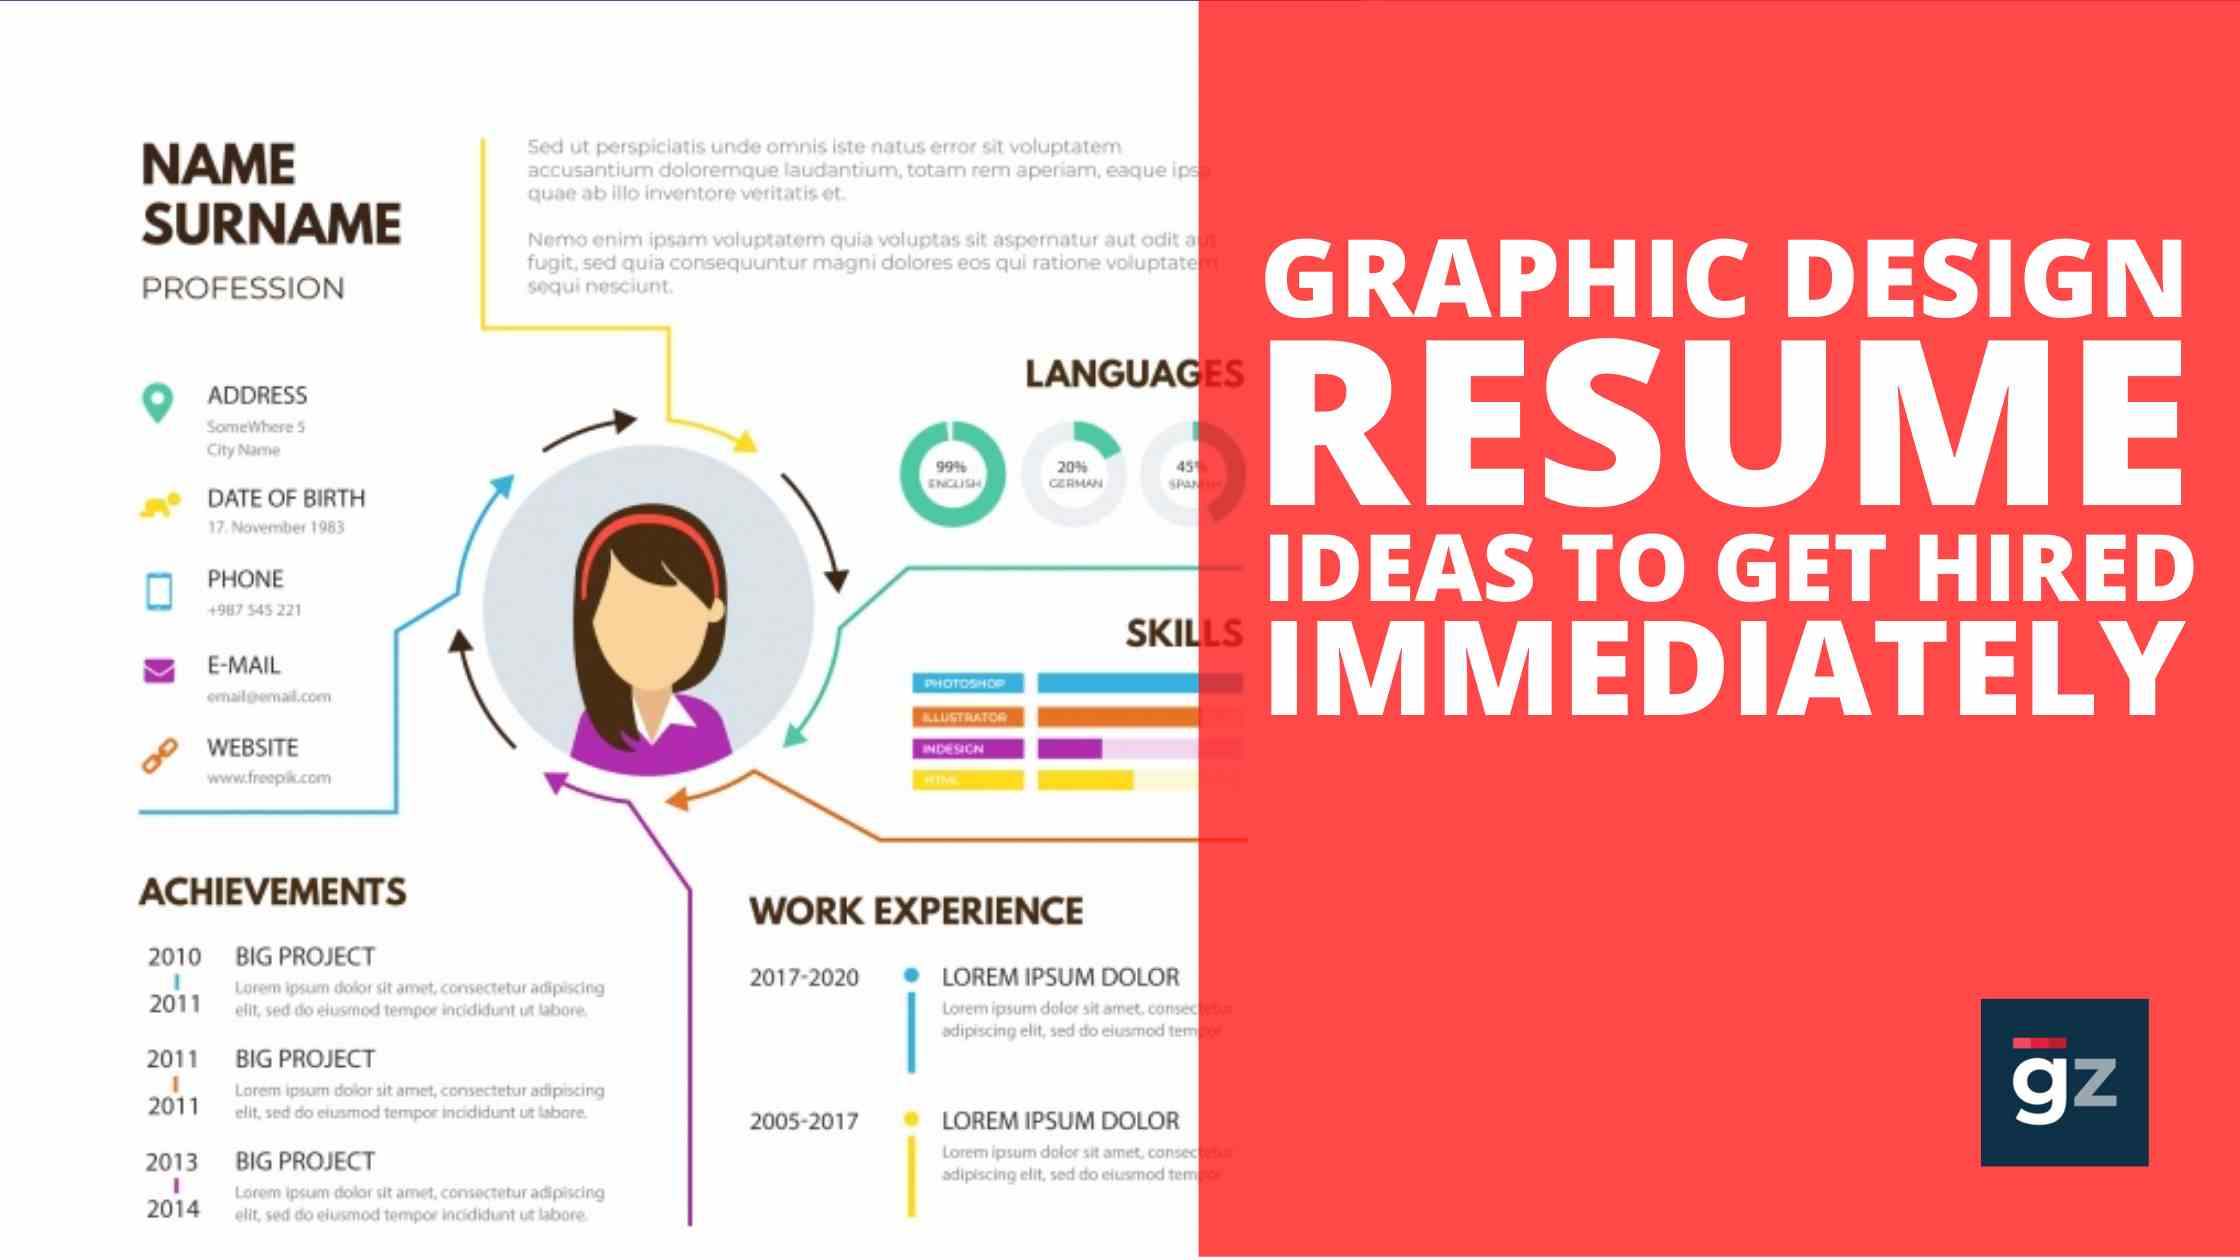 15 Amazing Graphic Design Resume Ideas to Get You Hired Immediately